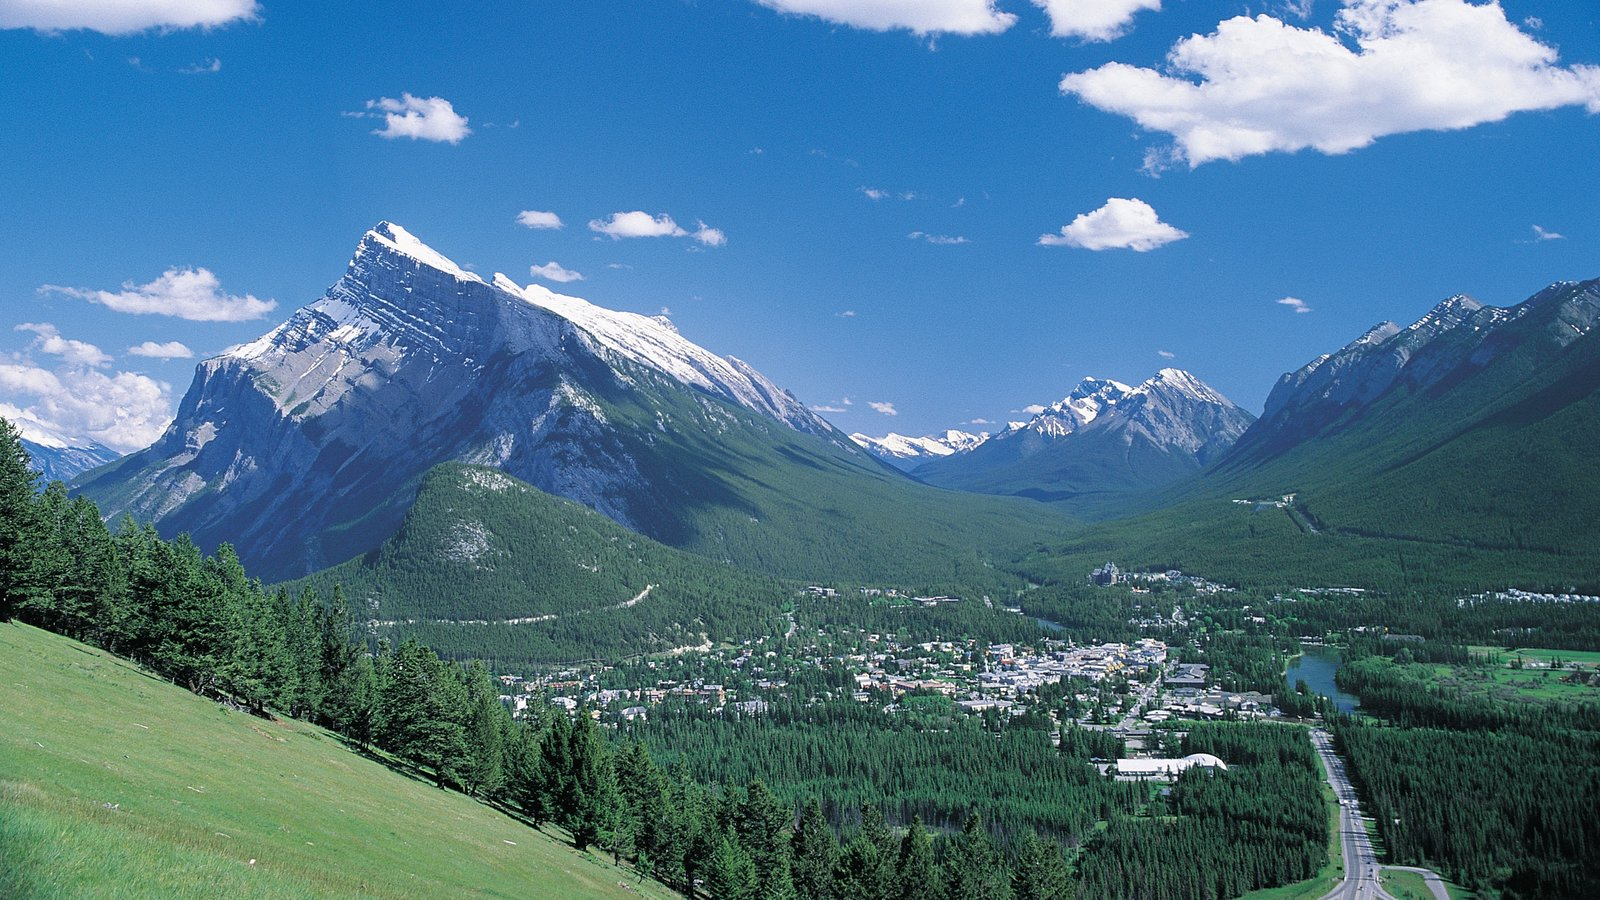 Banff which includes landscape views and mountains